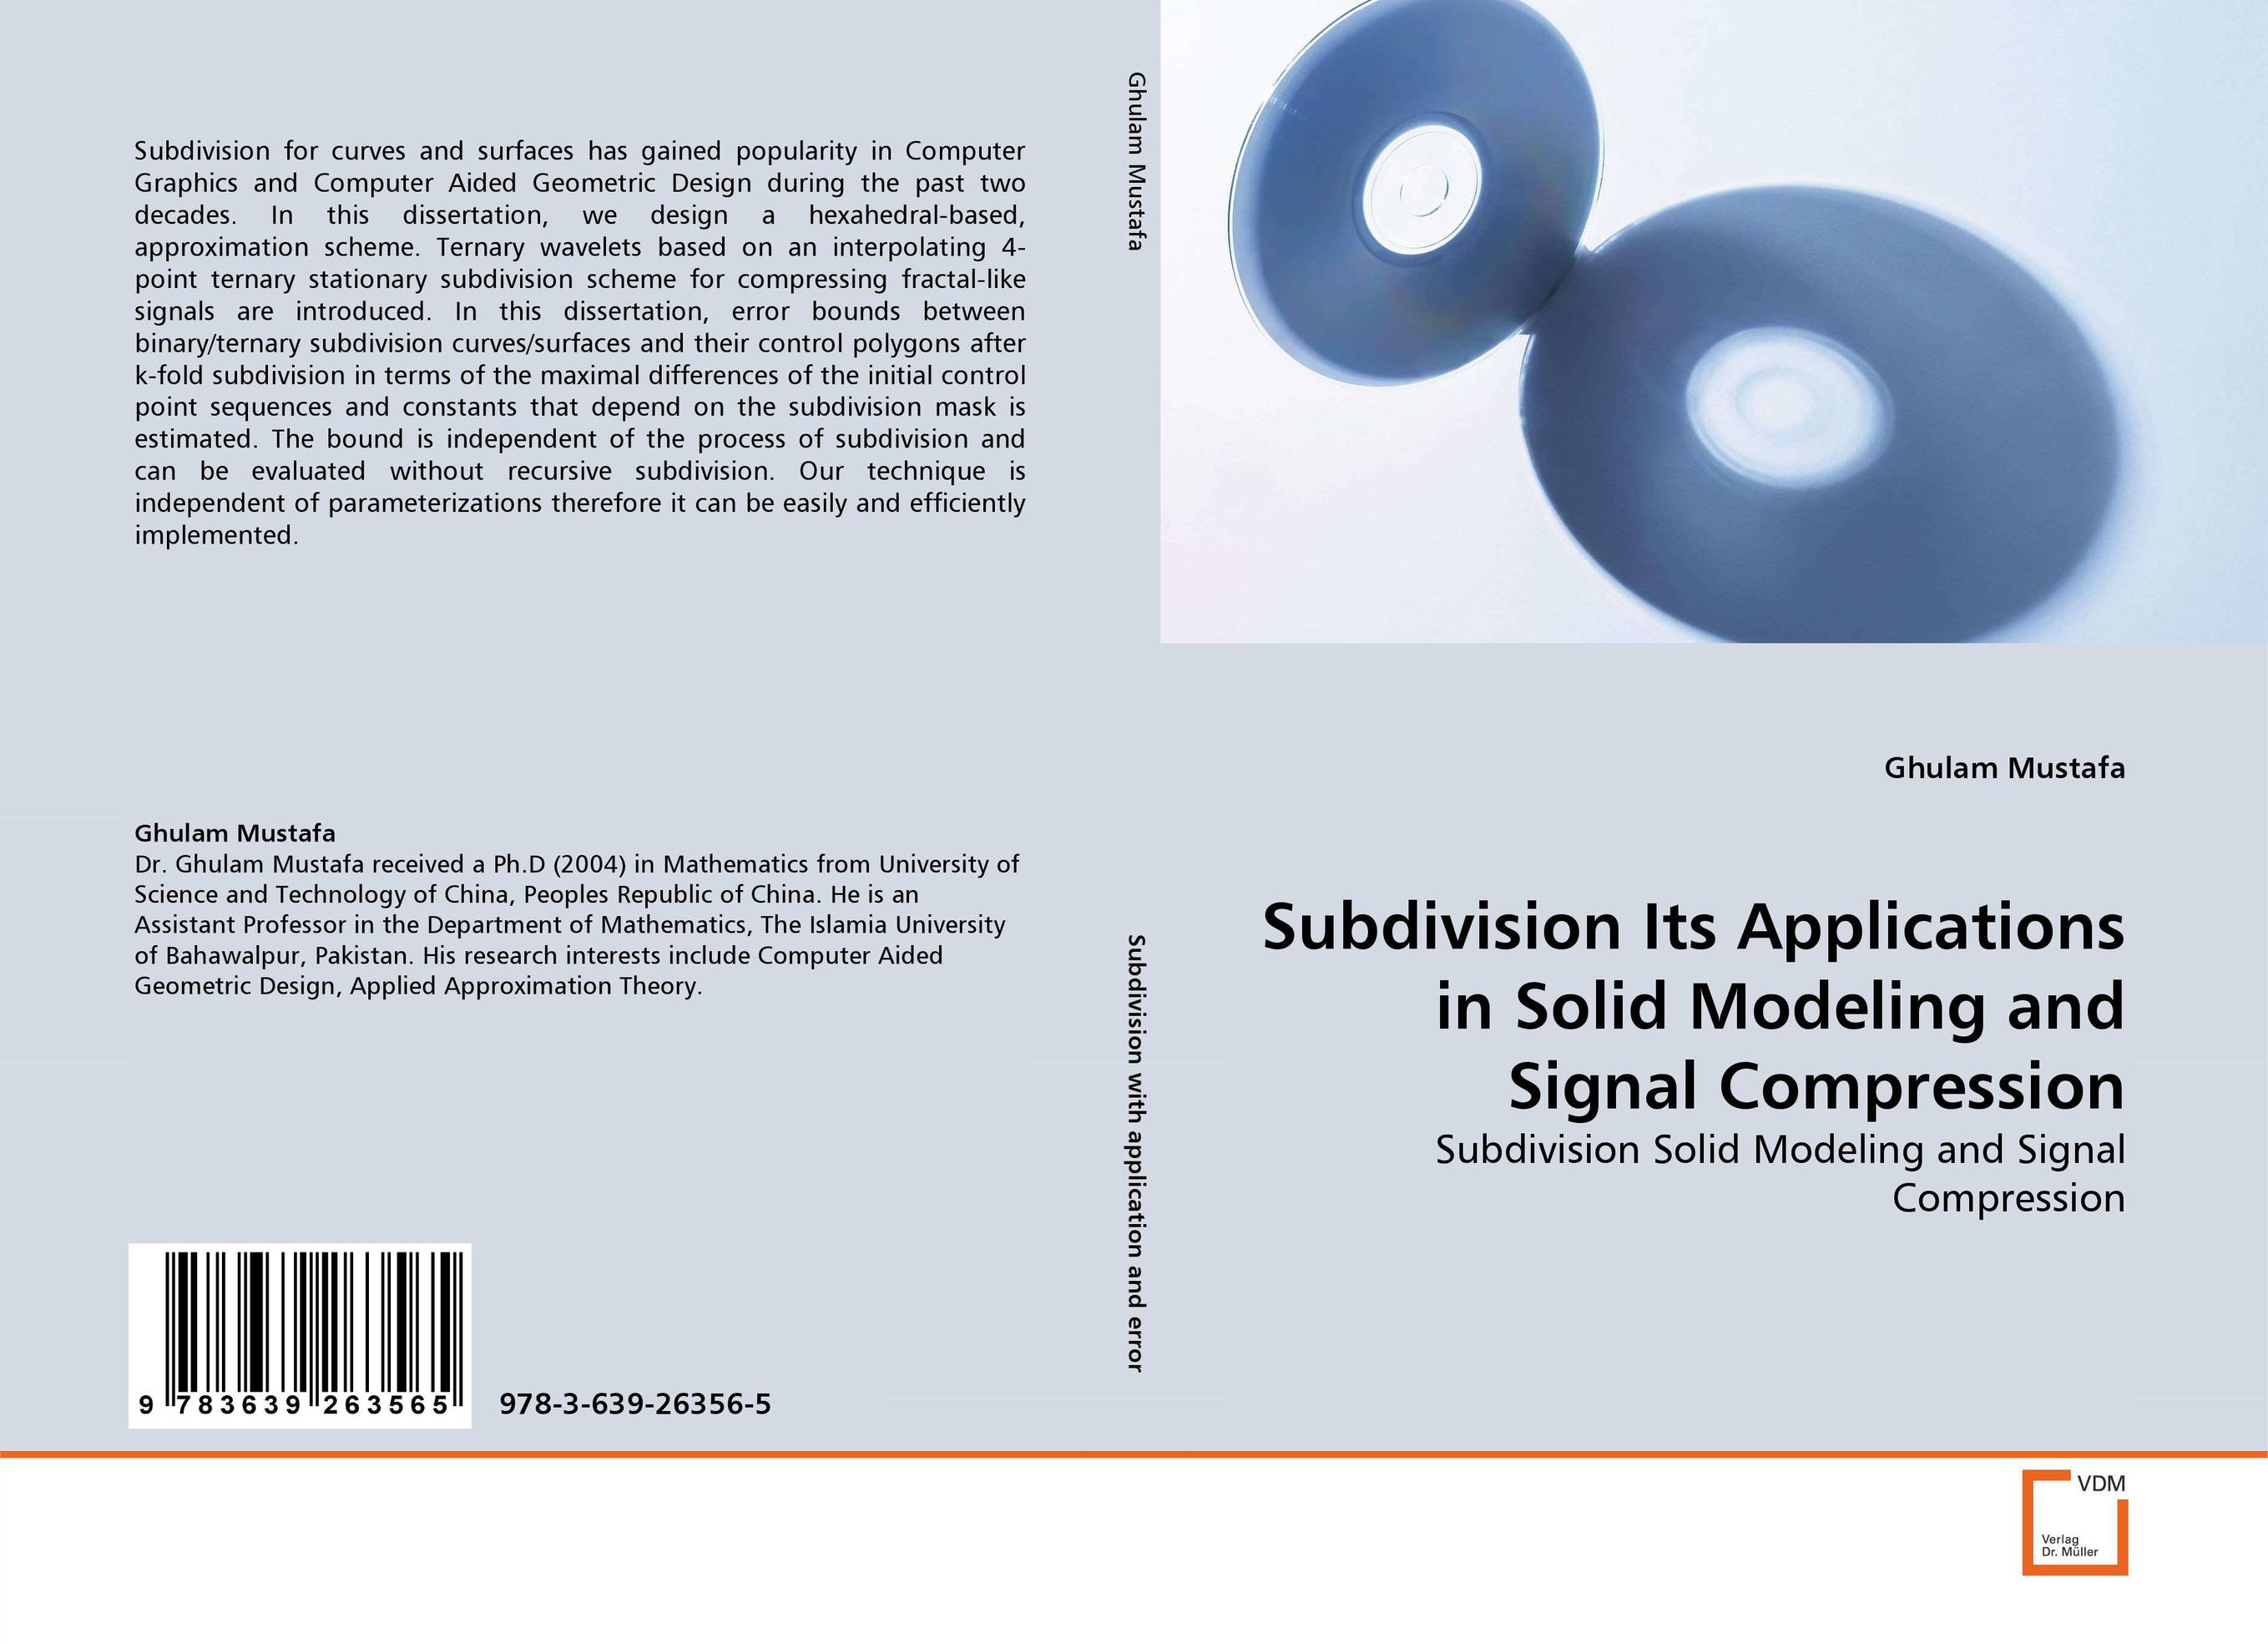 Subdivision Its Applications in Solid Modeling and Signal Compression